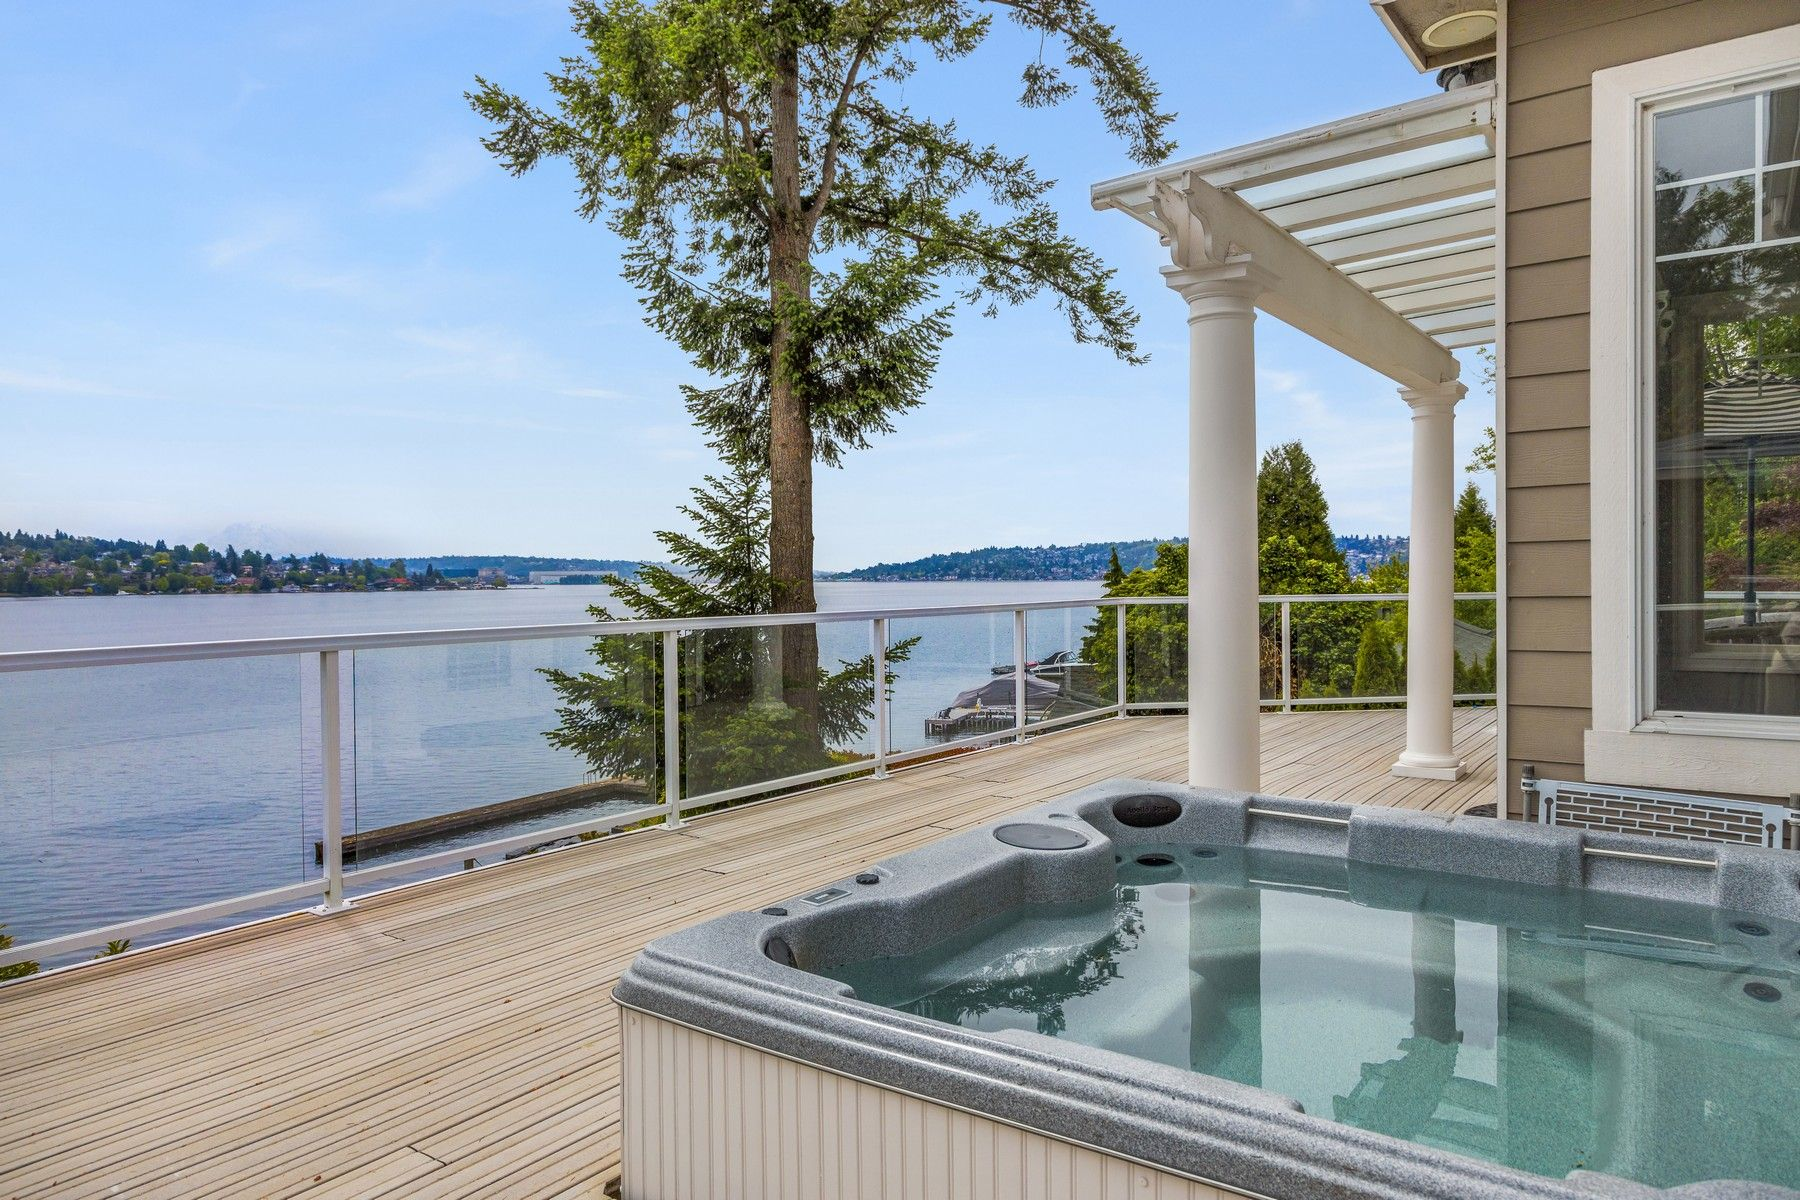 By the Numbers - Homes on the Lake Washington shore sold for an average 10.8 percent more than homes on Lake Sammamish; the median price was 25.1 percent greater. Among the 34 waterfront sales at Mercer Island, the average and median selling prices were $4.17 million and $3.08 million, respectively.